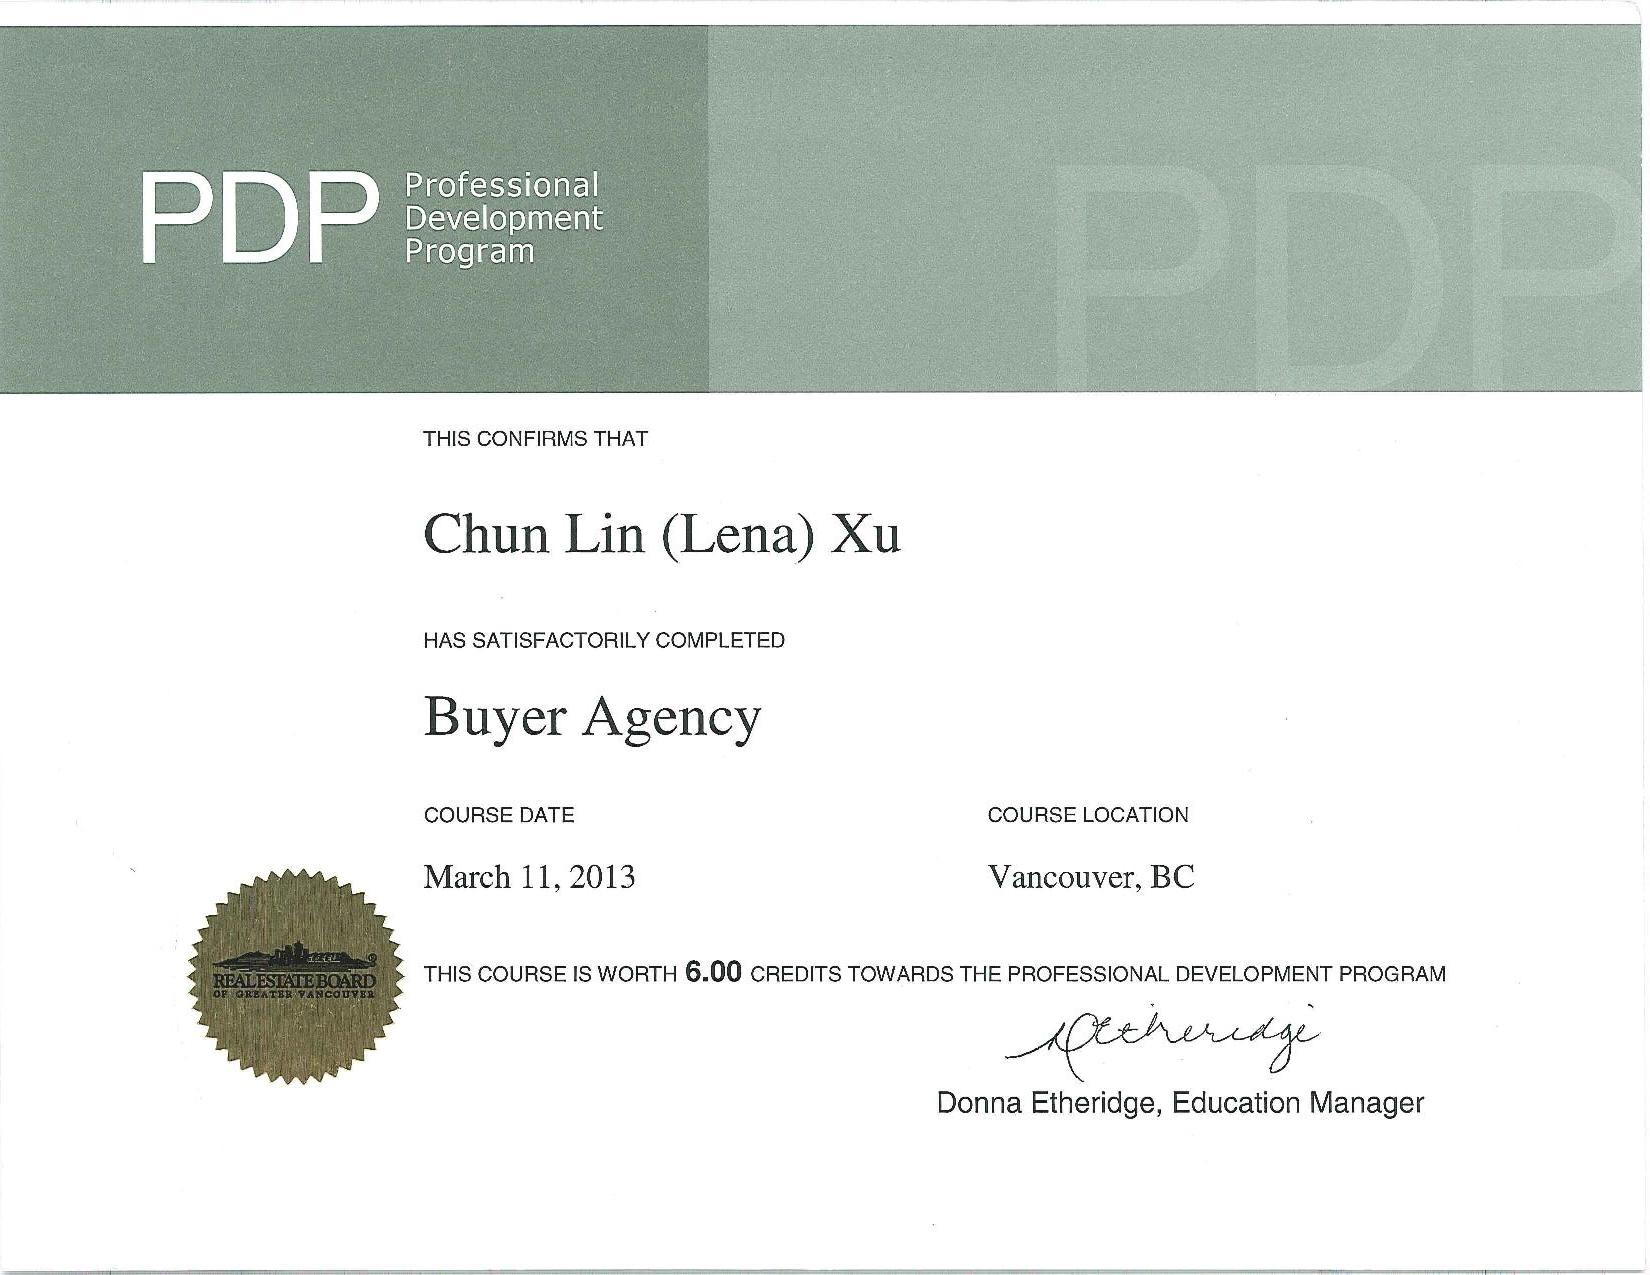 pdp buyer agency course